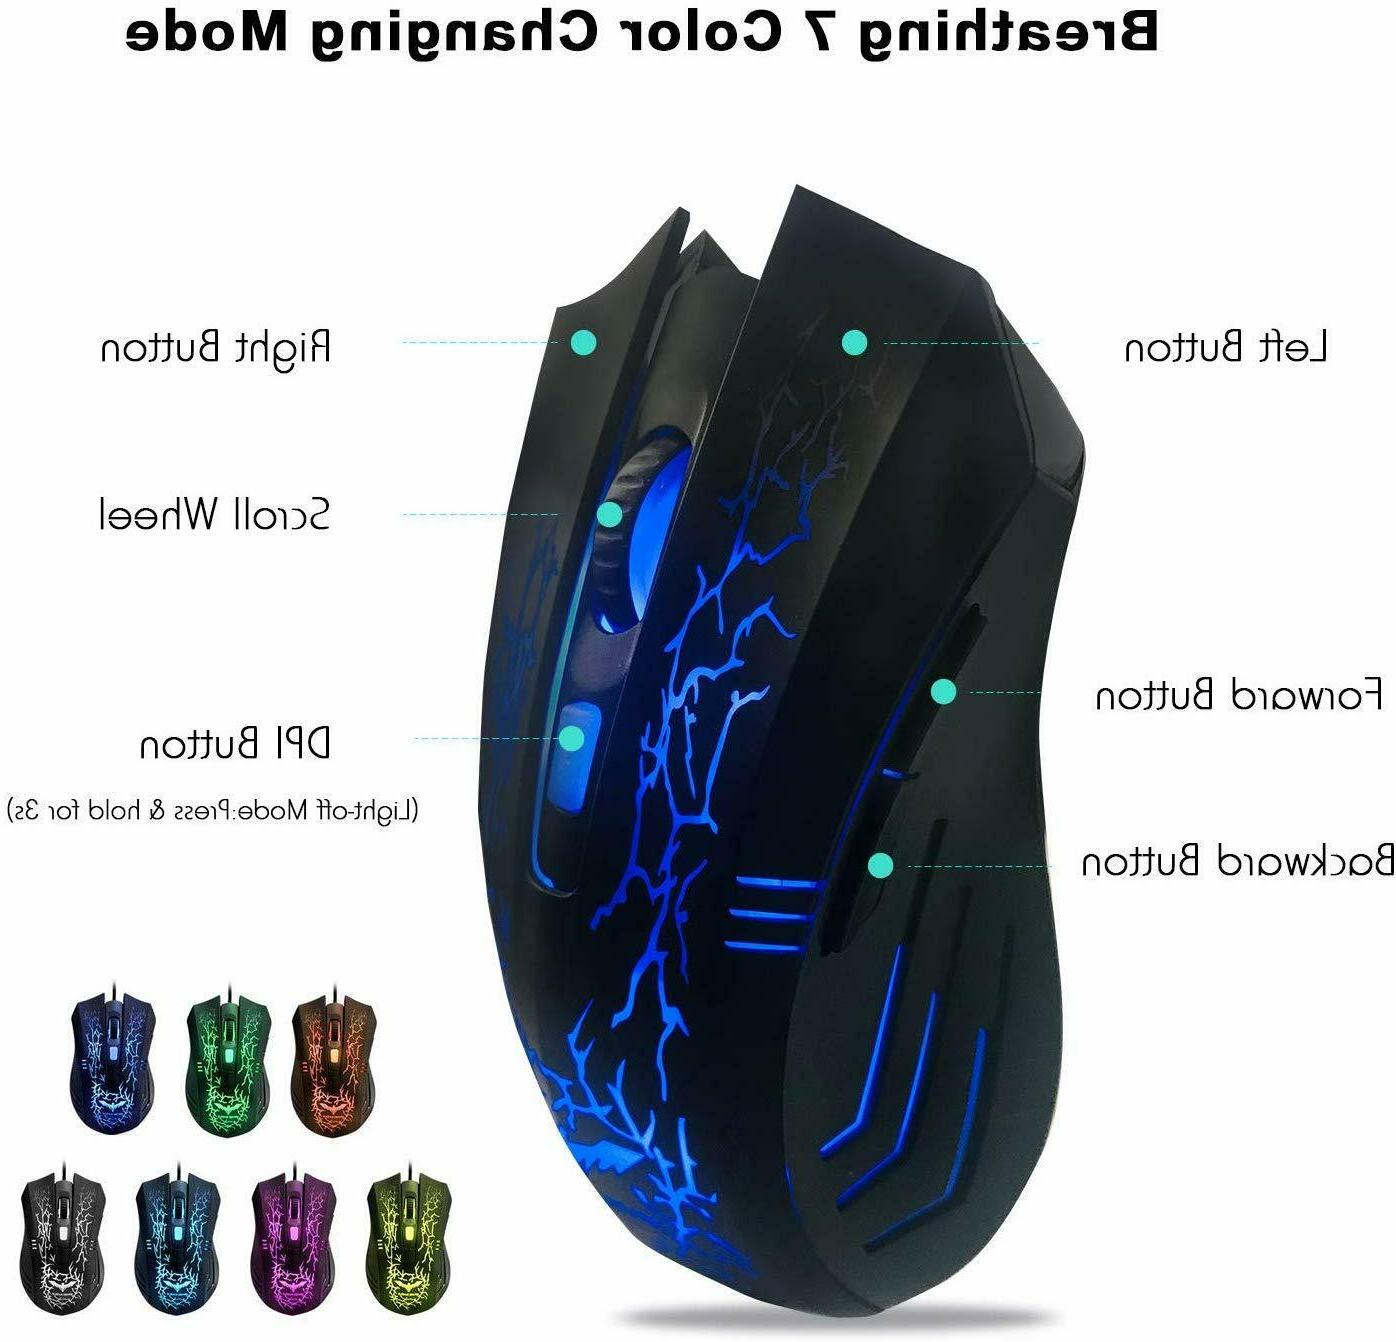 Gaming Keyboard Mouse & Mouse PC, Computer, & PS4